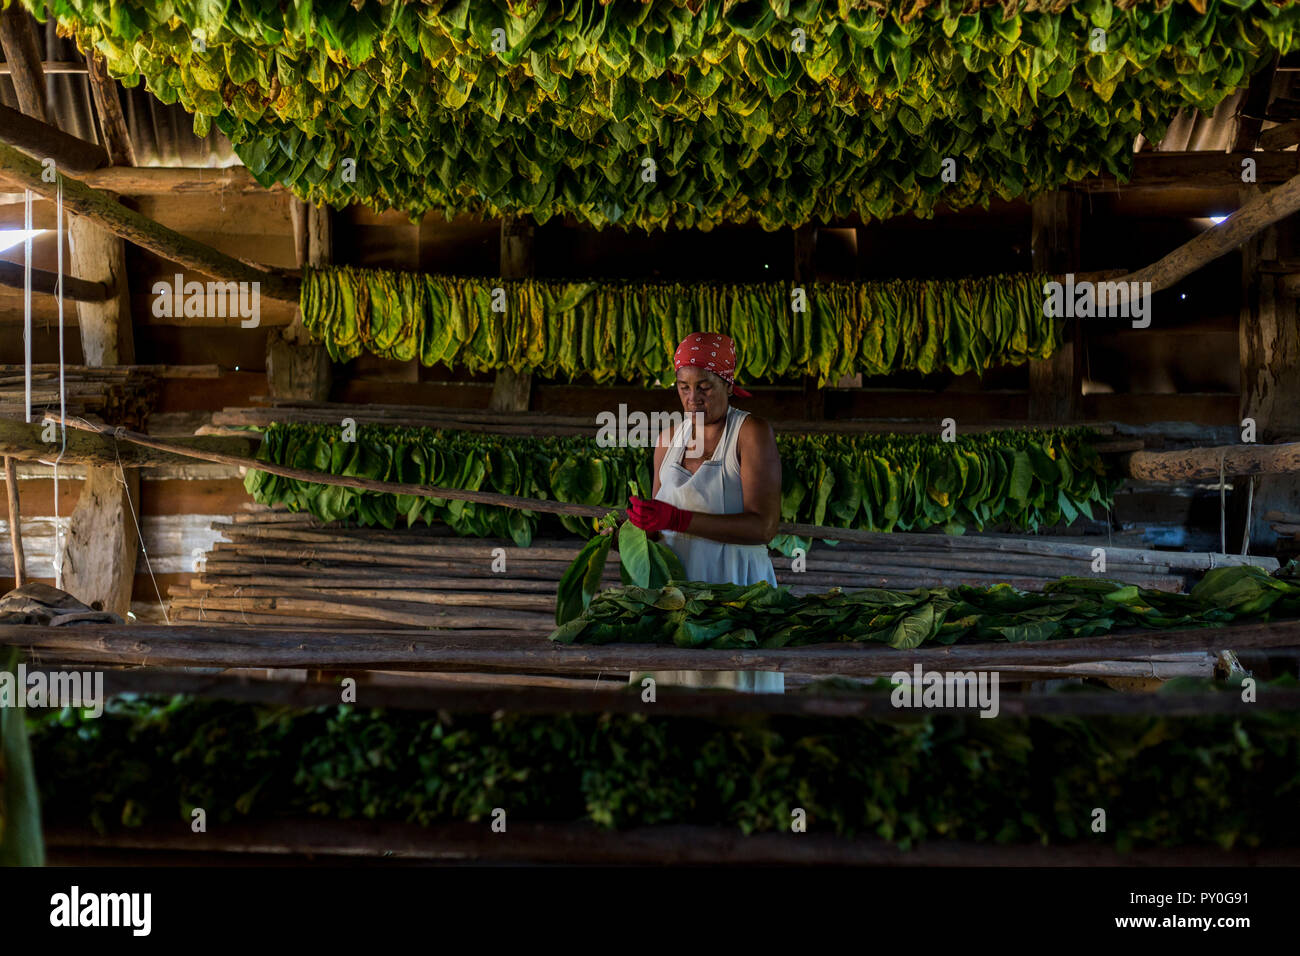 Mature woman wearing headscarf threading and drying tobacco leaves, Vinales, Pinar del Rio Province, Cuba - Stock Image